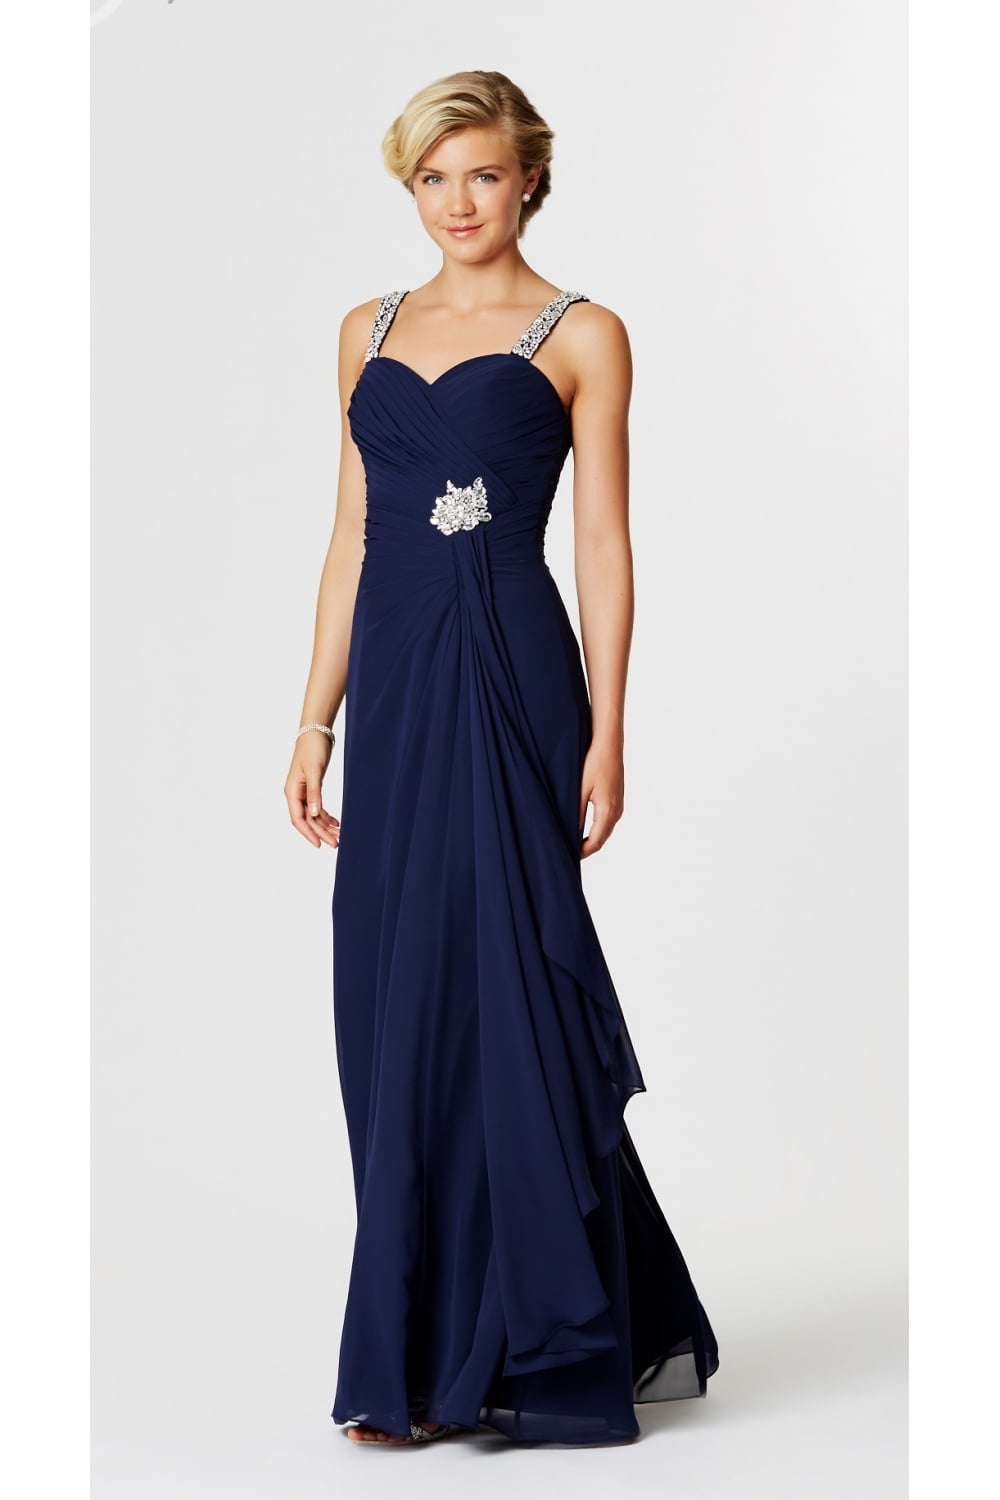 Serenade bridesmaid dresses by tiffanys uk stock at cheapest prices navy tia pleated chiffon long prom dress ombrellifo Image collections